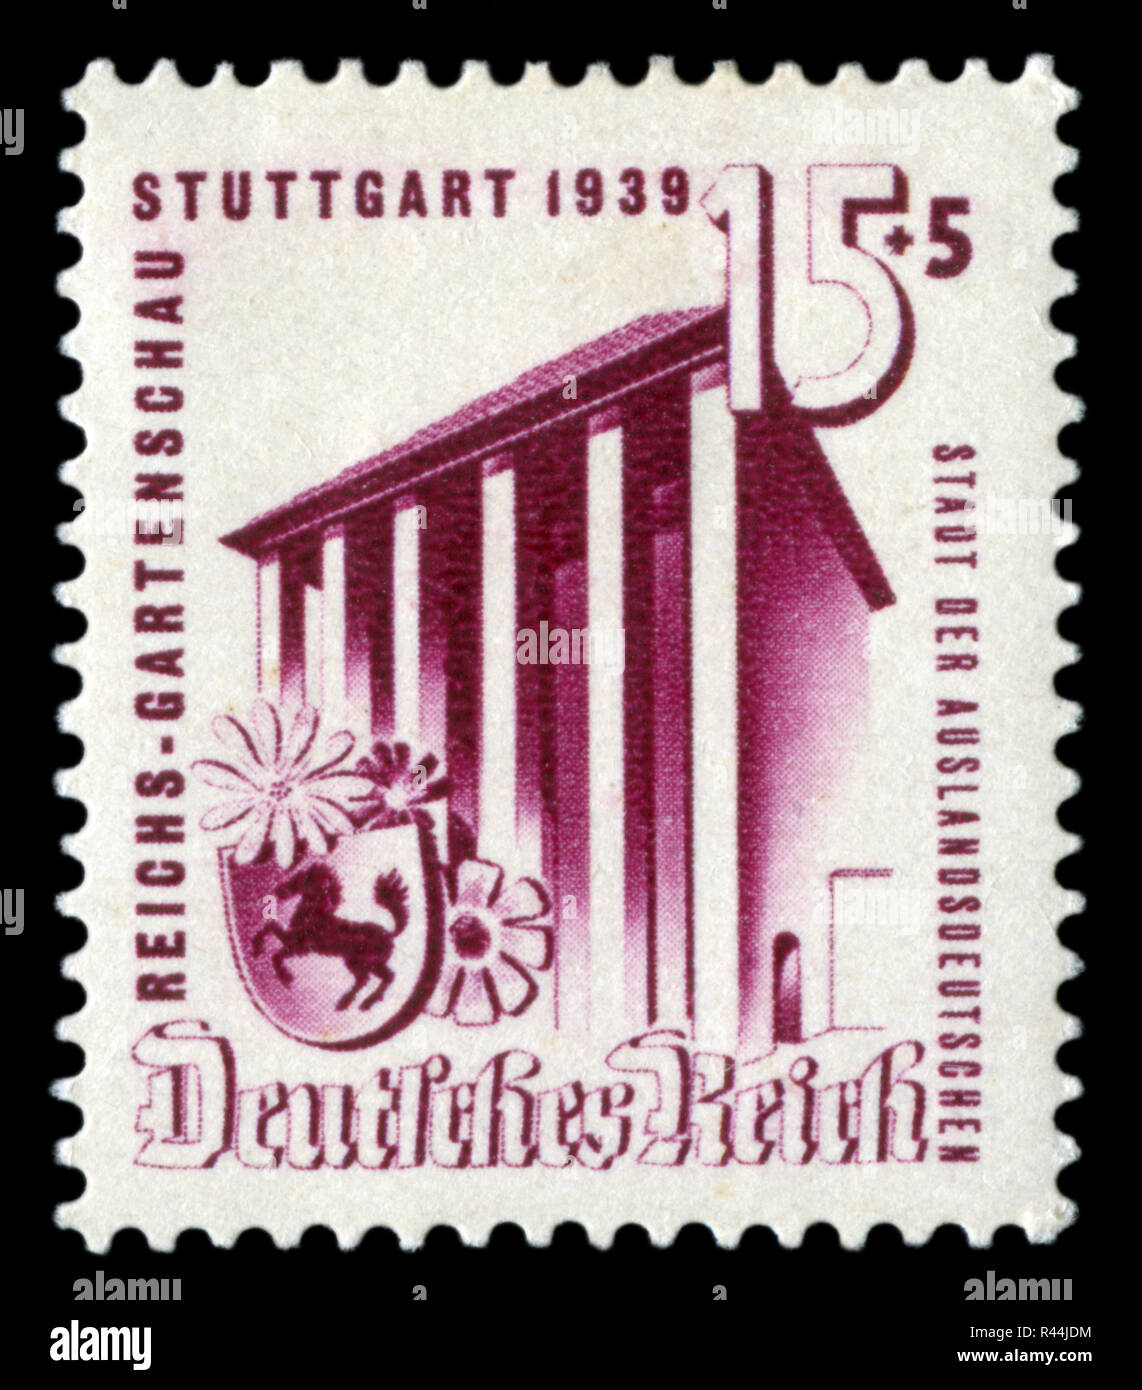 German historical stamp: Exhibition of horticulture in Stuttgart, 1939. Exhibition pavilion and coat of arms of Stuttgart. Germany, the Third Reich. - Stock Image